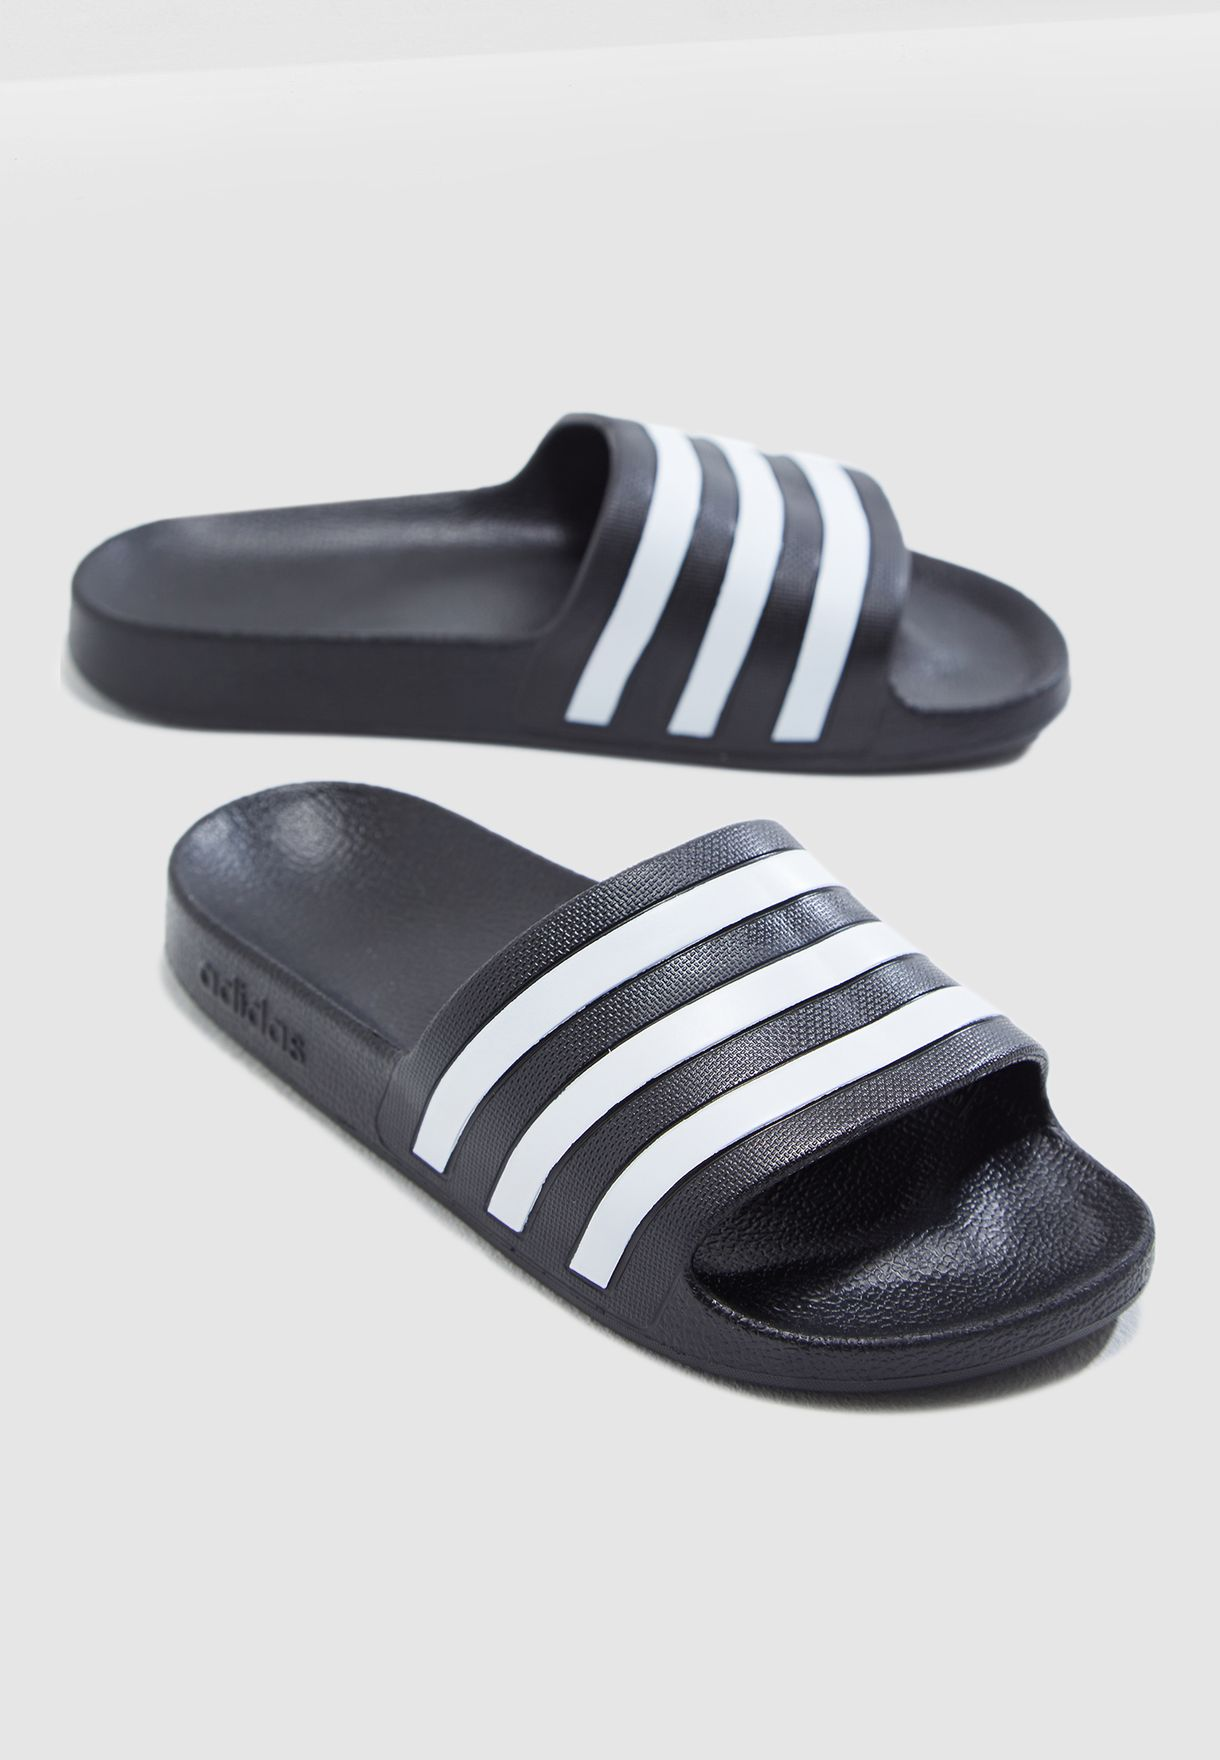 3e8c4fae3b36 Shop adidas black Adilette Aqua Slides F35543 for Women in UAE ...